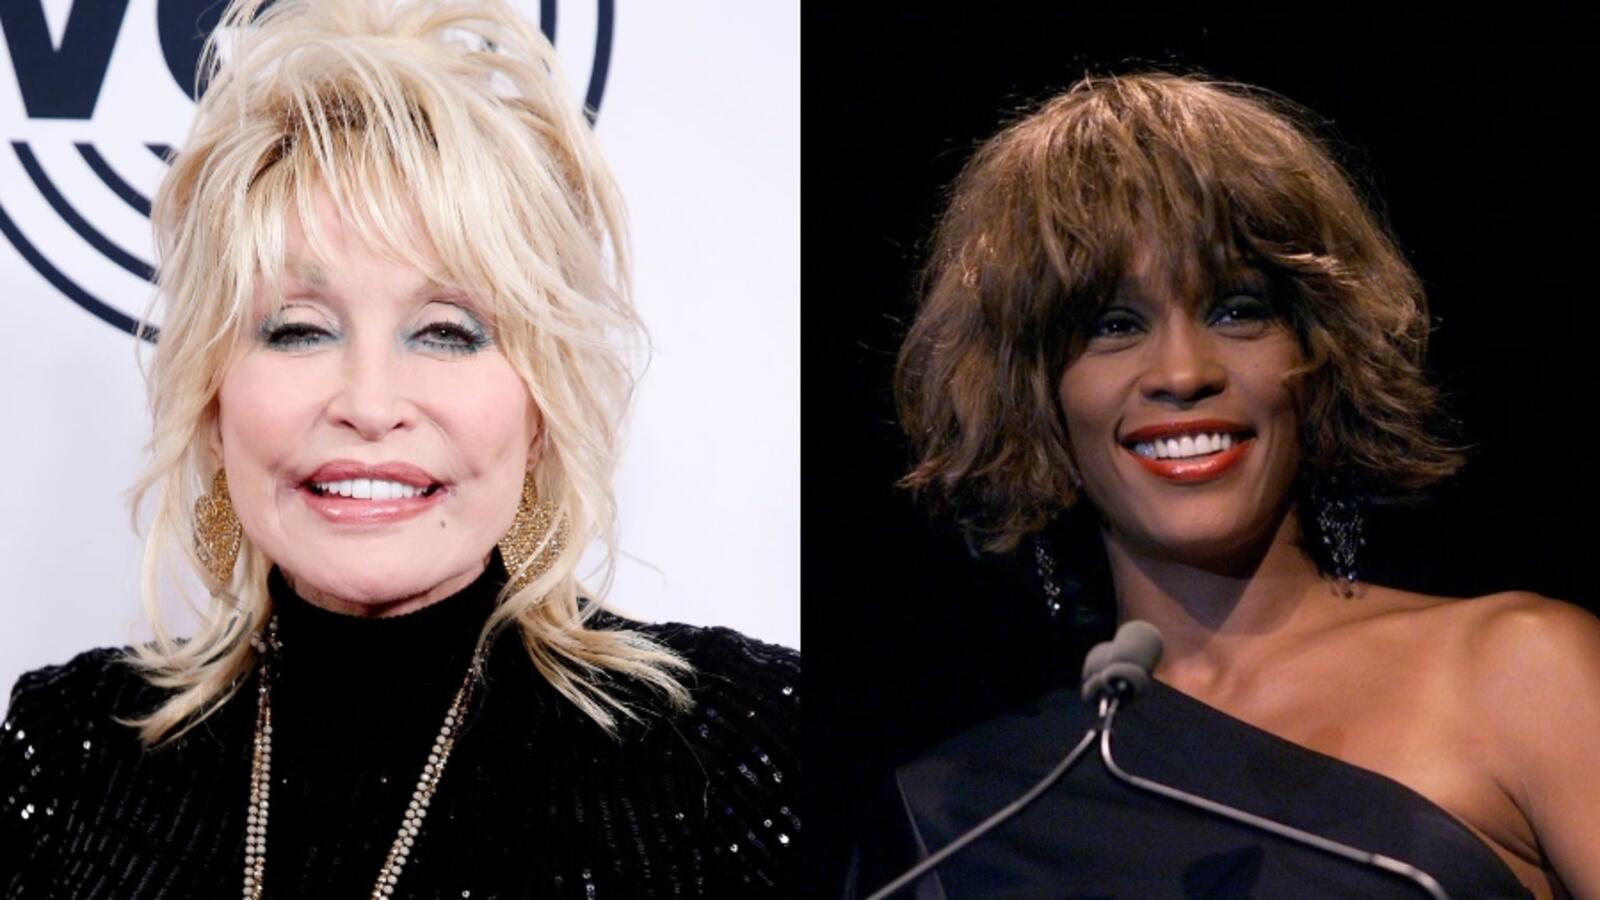 Dolly Parton Used 'I Will Always Love You' Royalties For Black Community